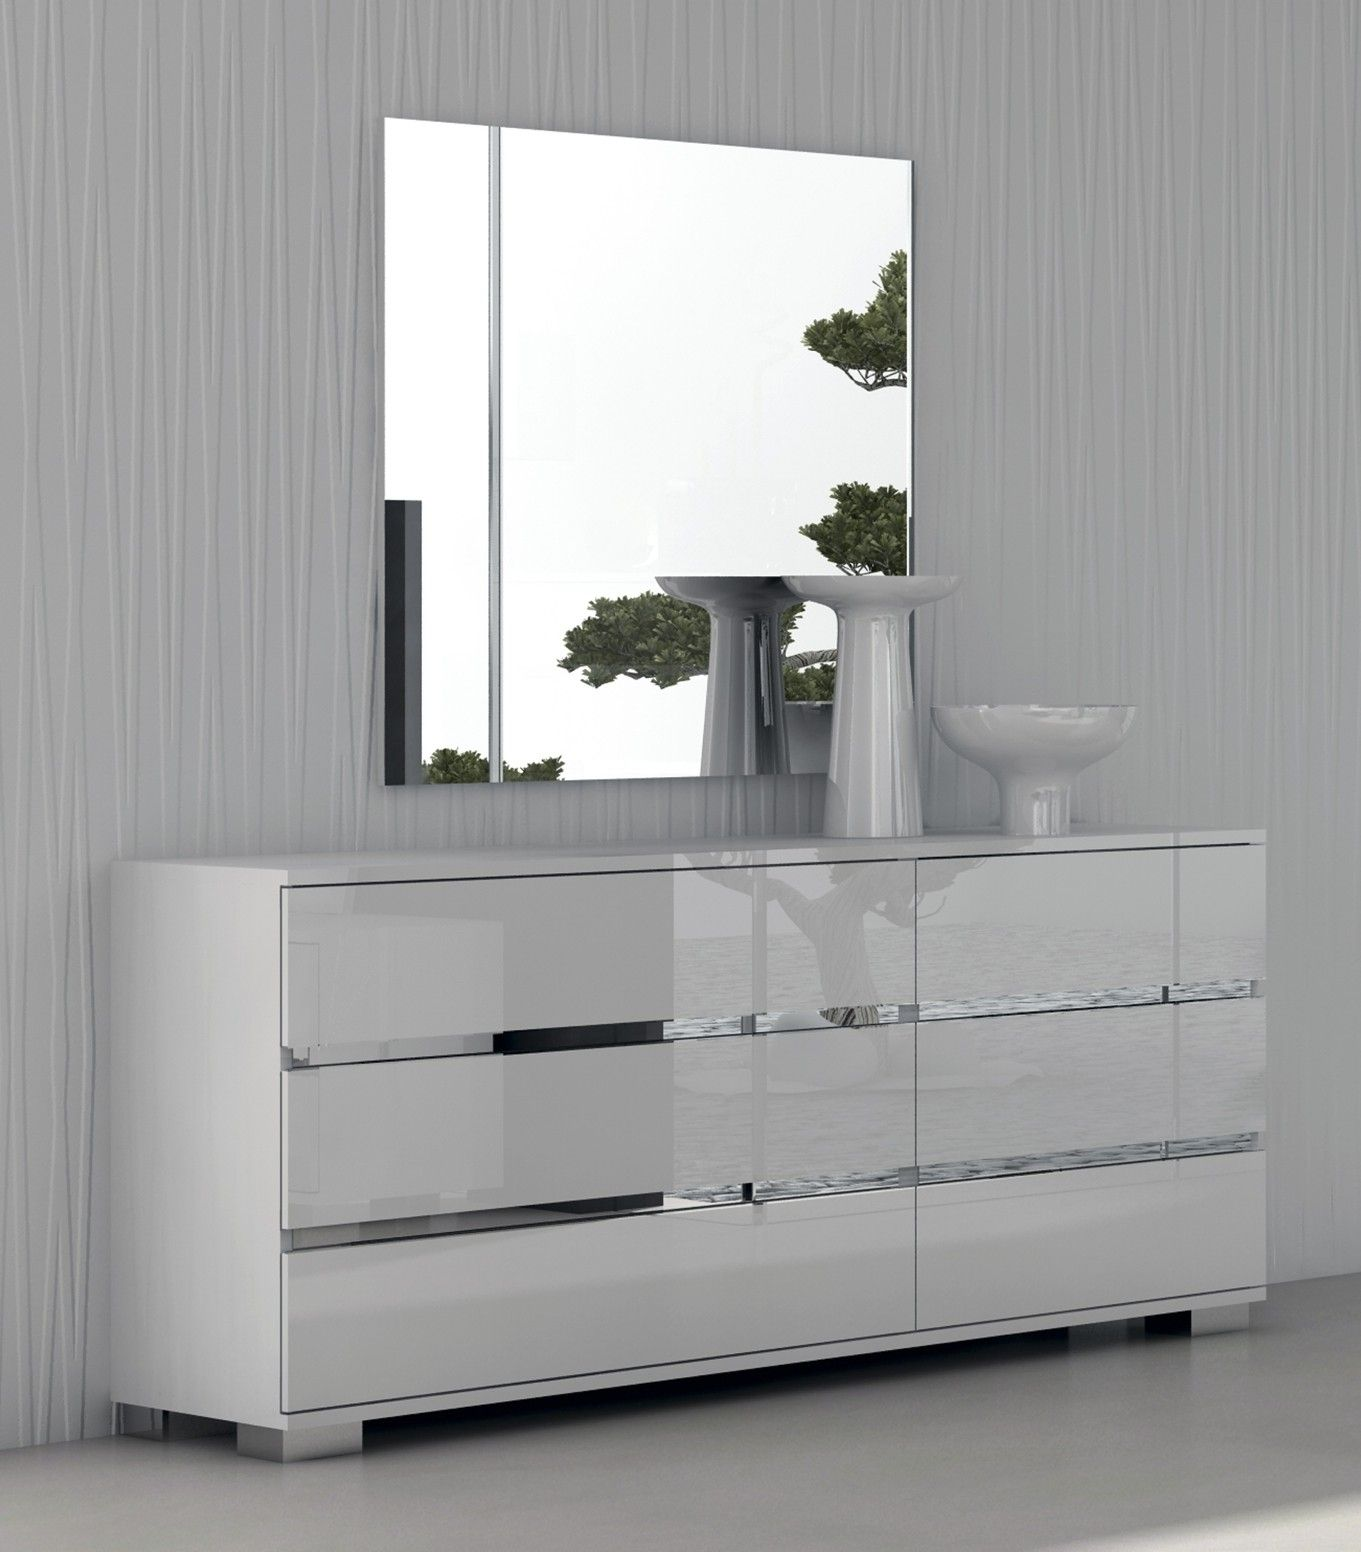 This Dresser And Mirror Combination Looks Amazing I Ve Never Seen A Dresser That Is As Weisse Schlafzimmermobel Schlafzimmer Kommode Moderne Schlafzimmermobel